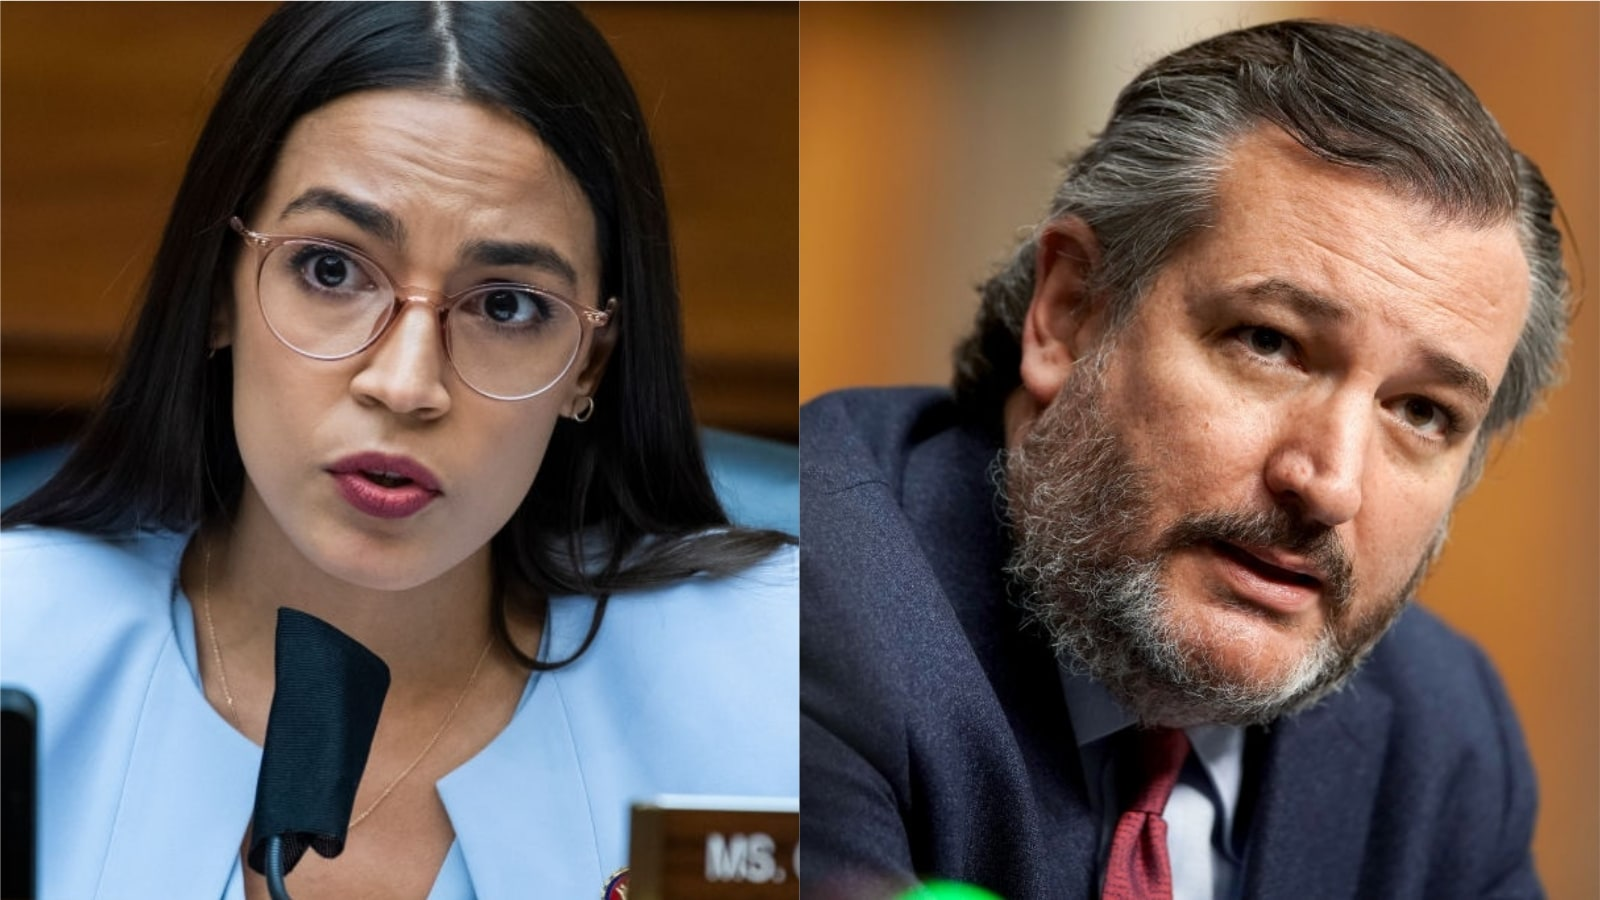 'You Almost Had Me Murdered': AOC Gives Ted Cruz The Virtual Hand After He Tries Bonding Over Stock App Fiasco